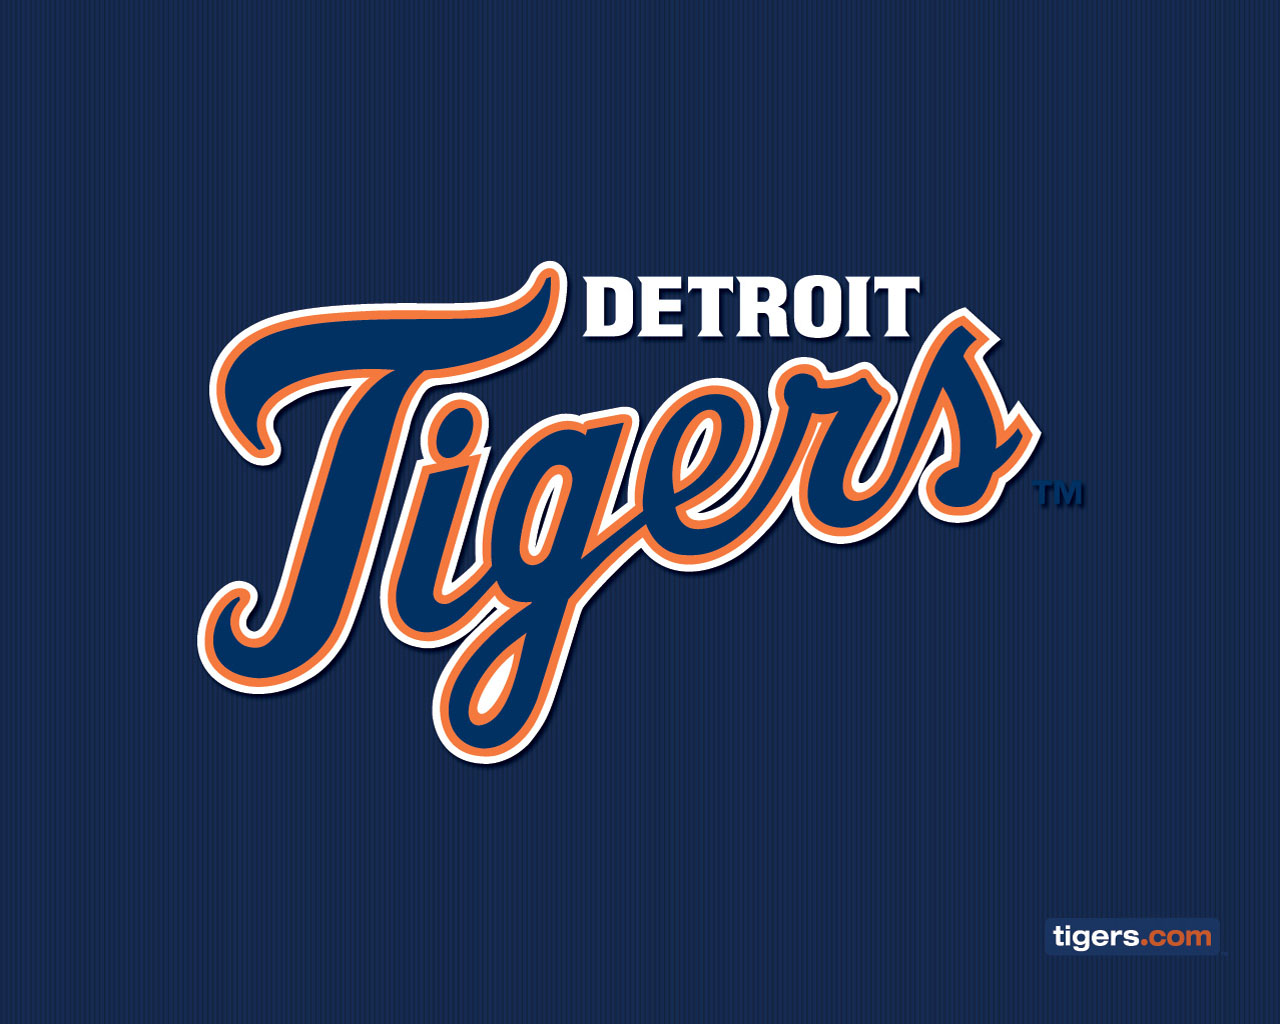 Detroit Tigers Wallpaper